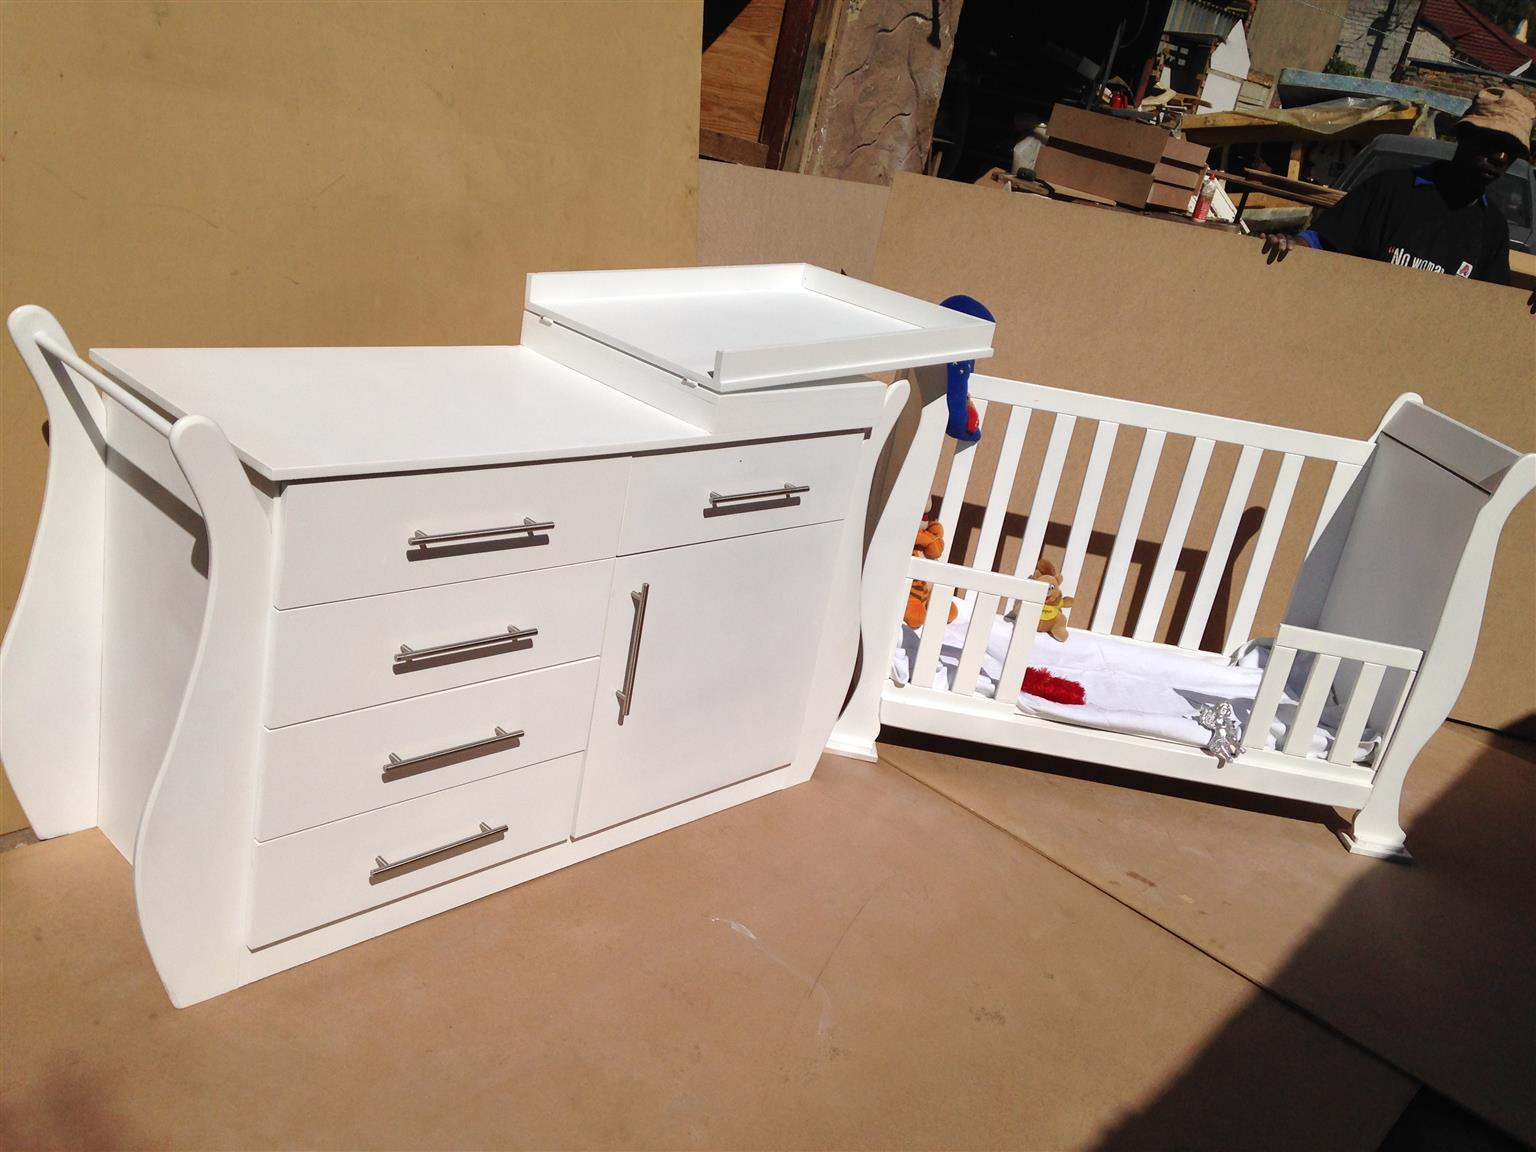 Syringa Baby Cot and Compactum-R 4999,00